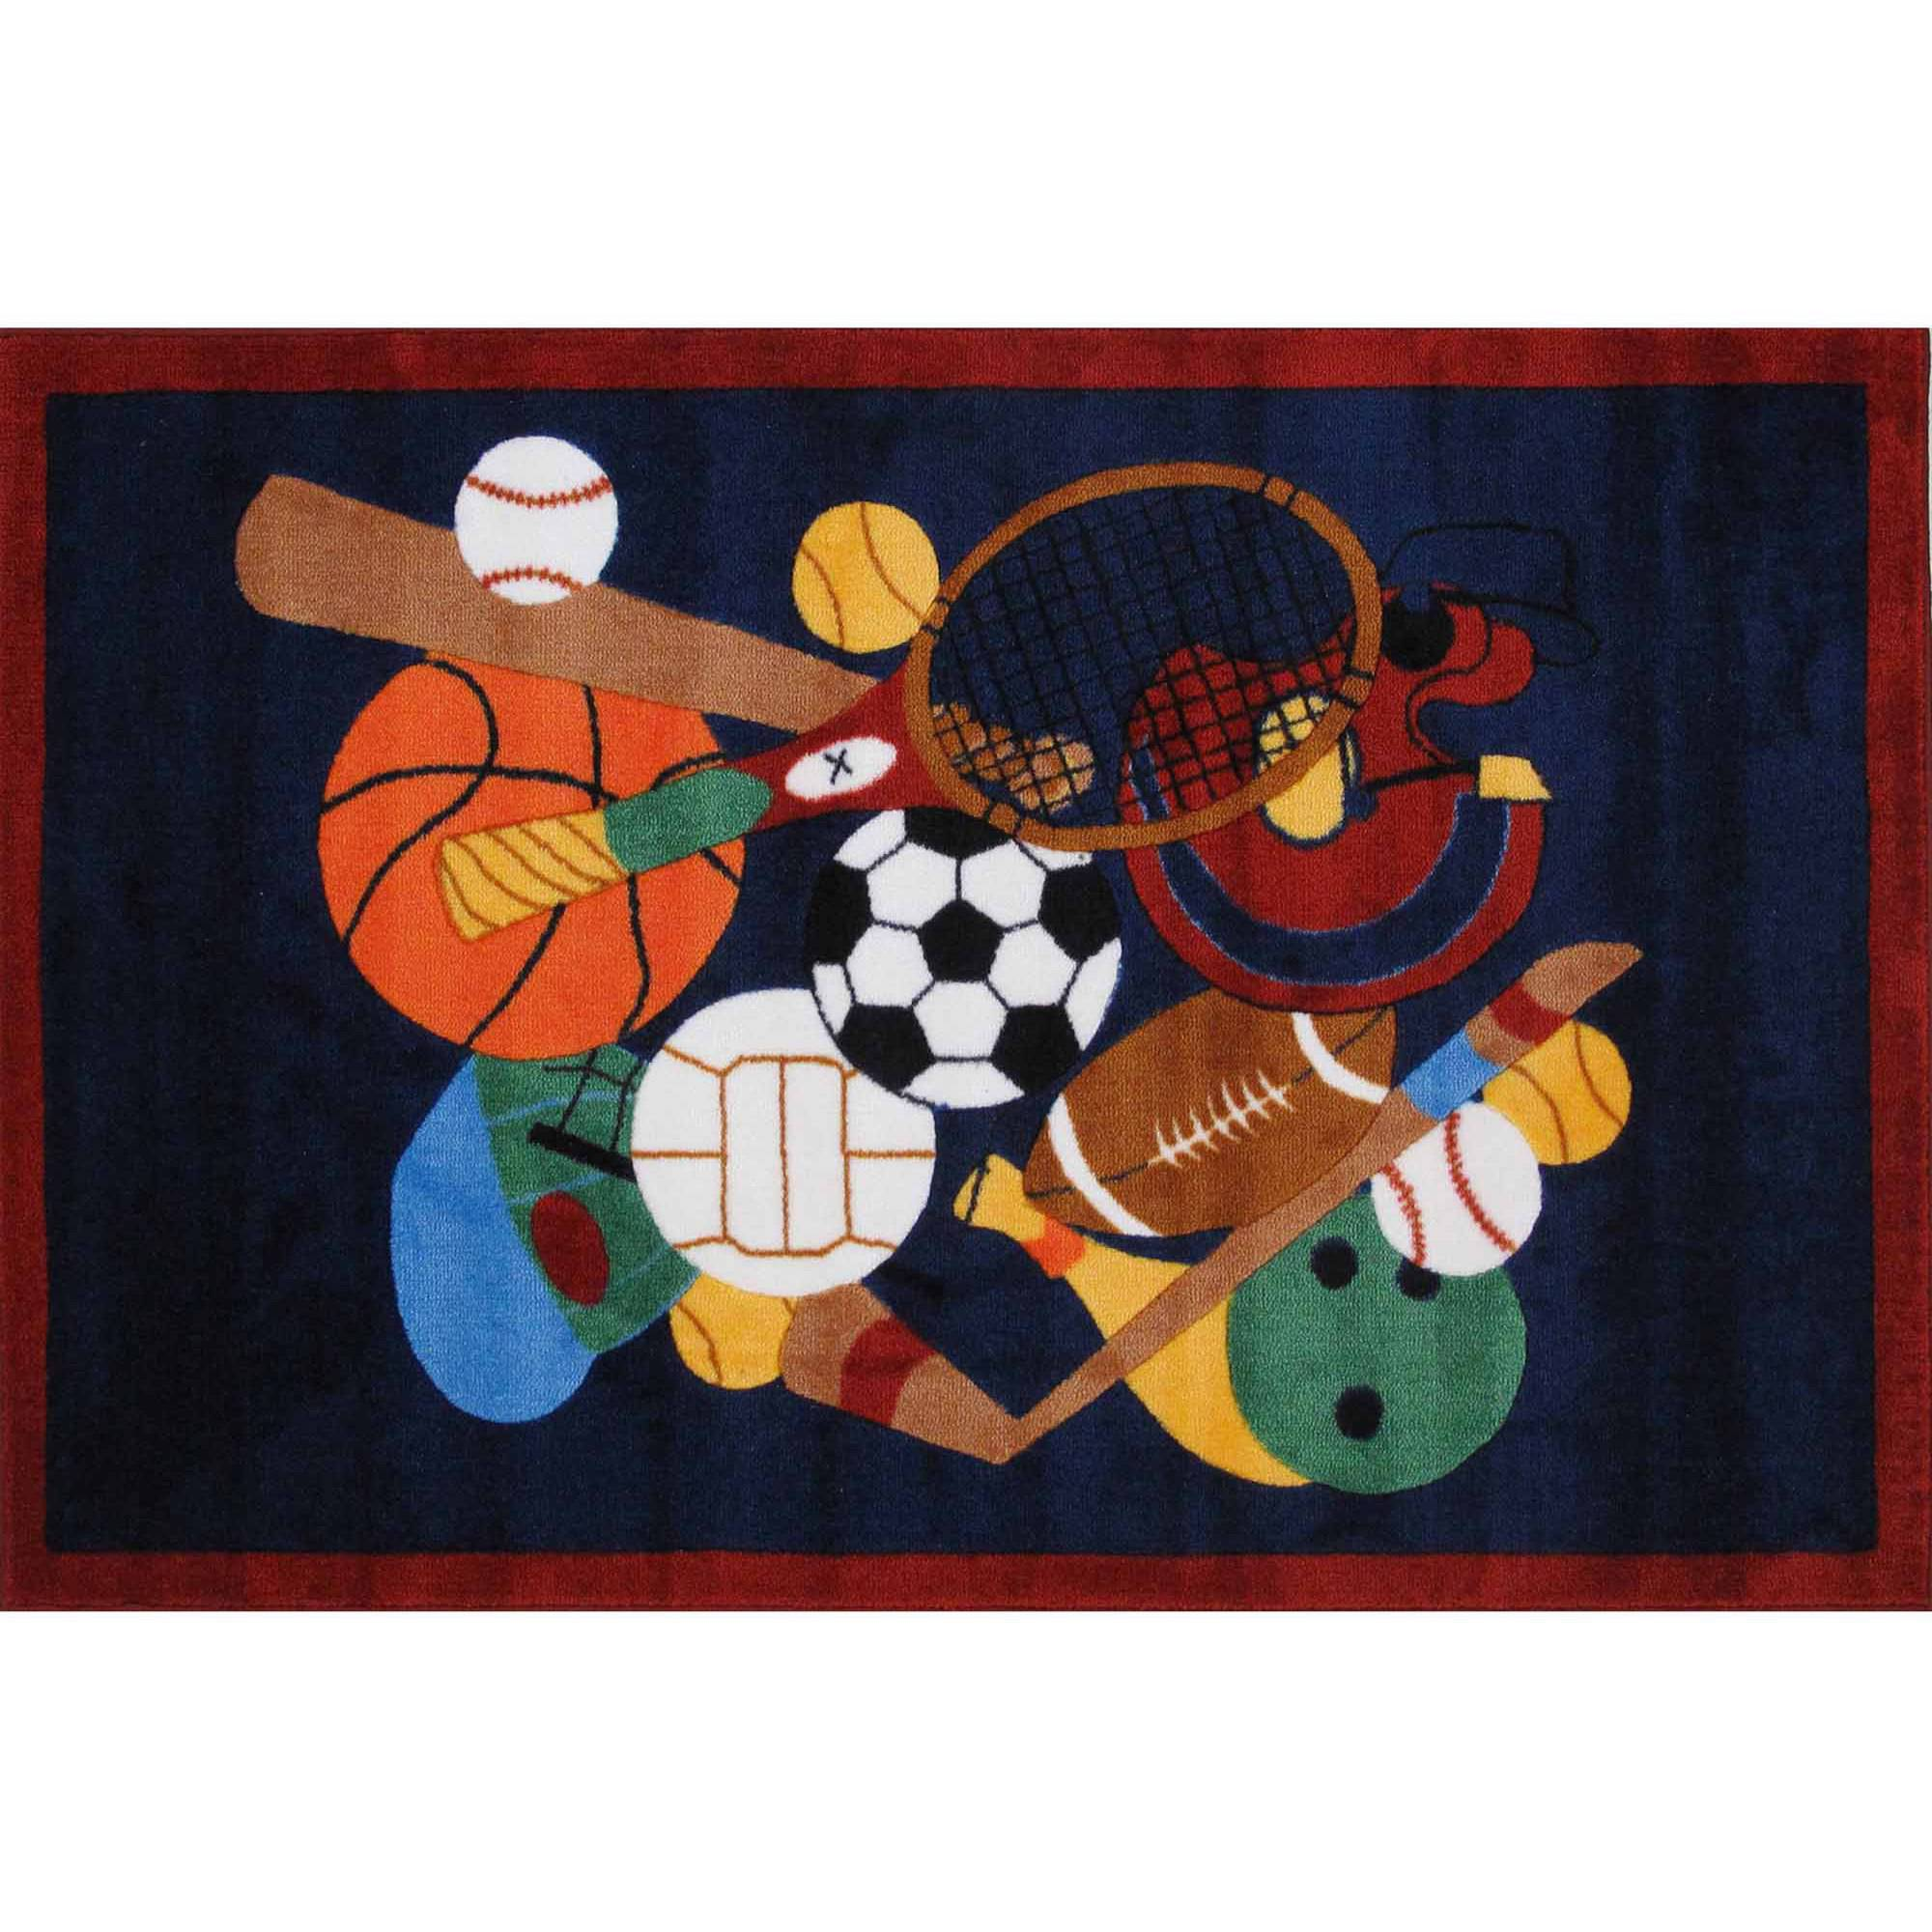 Fun Rugs Sports America Kids Rugs